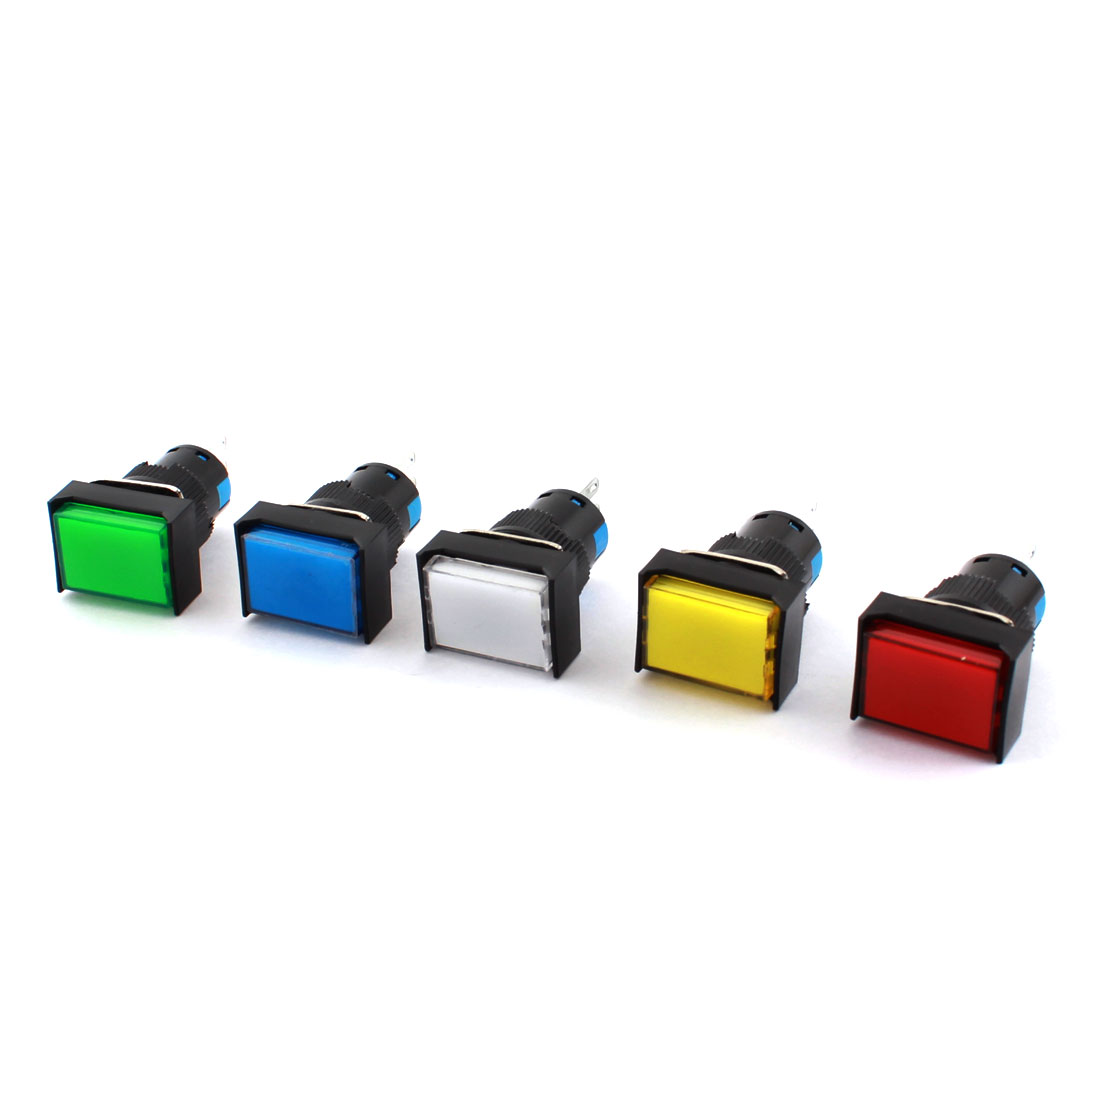 5 Pcs AC 250V 5A Assorted Color Button 16mm Thread Panel Mounted SPDT 3Pins Momentary Rectangle Pushbutton Switch